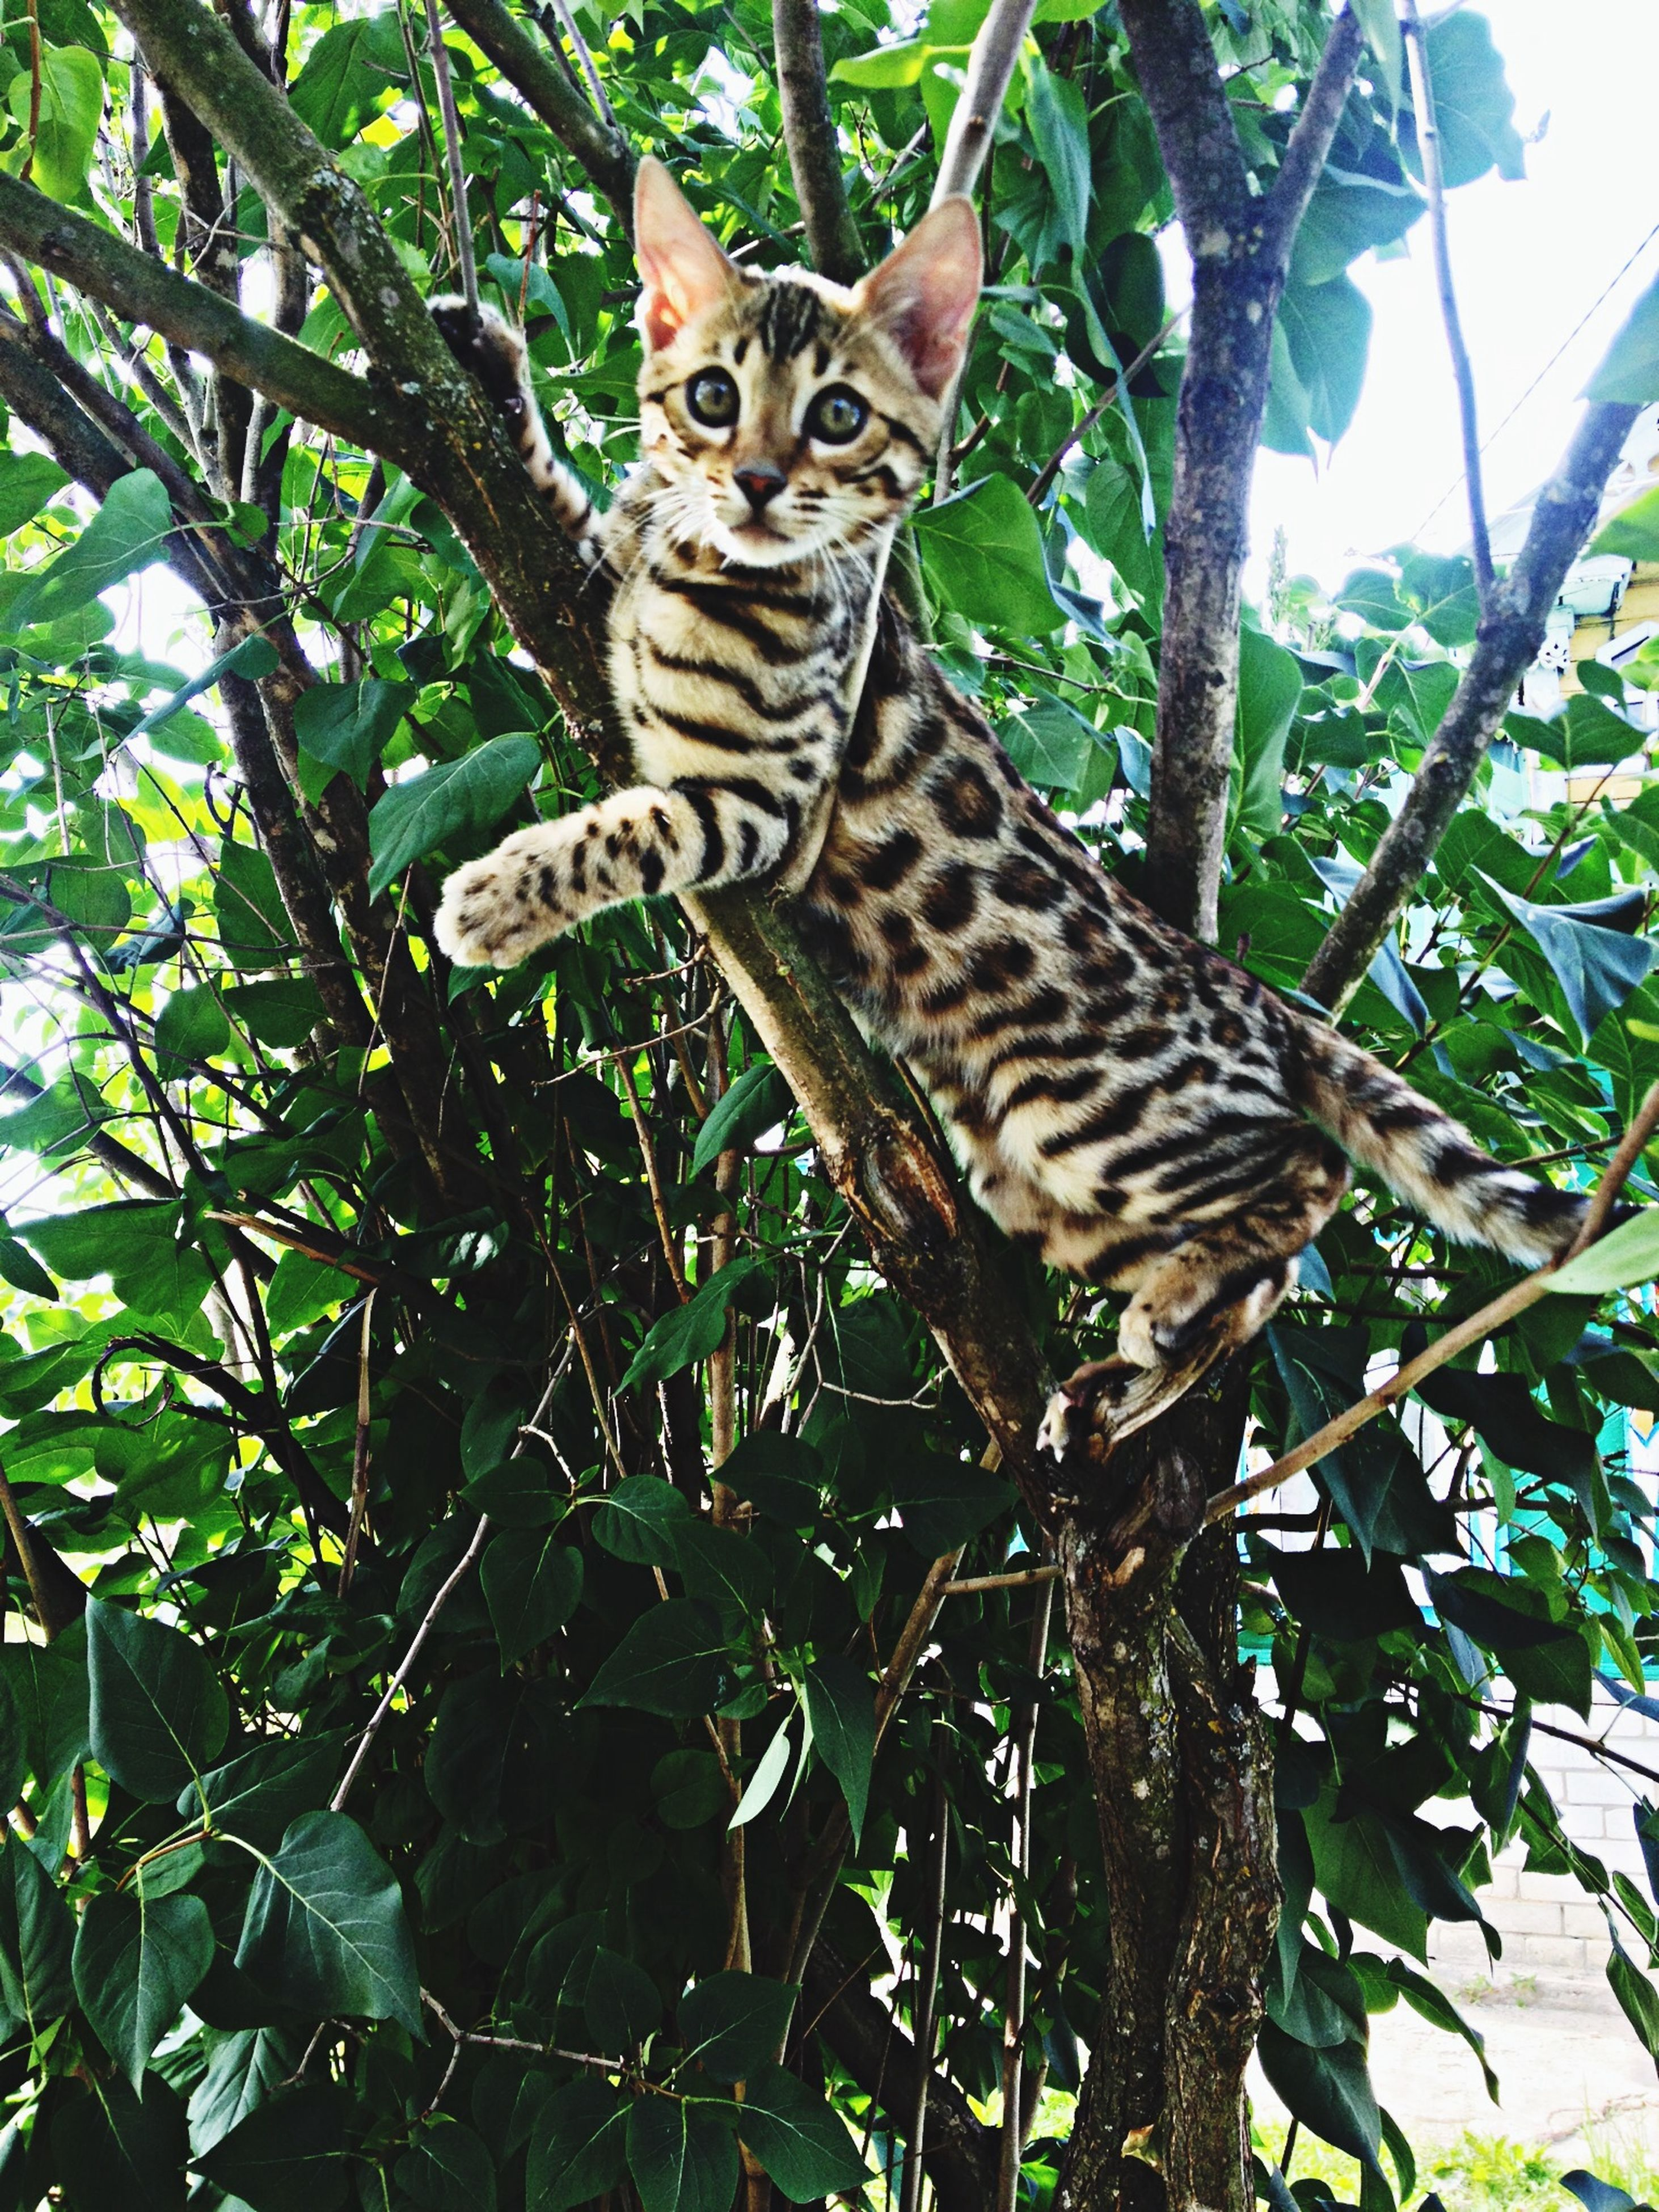 animal themes, one animal, mammal, animal markings, animals in the wild, tree, wildlife, feline, tiger, domestic cat, portrait, looking at camera, low angle view, giraffe, safari animals, sitting, outdoors, nature, plant, no people